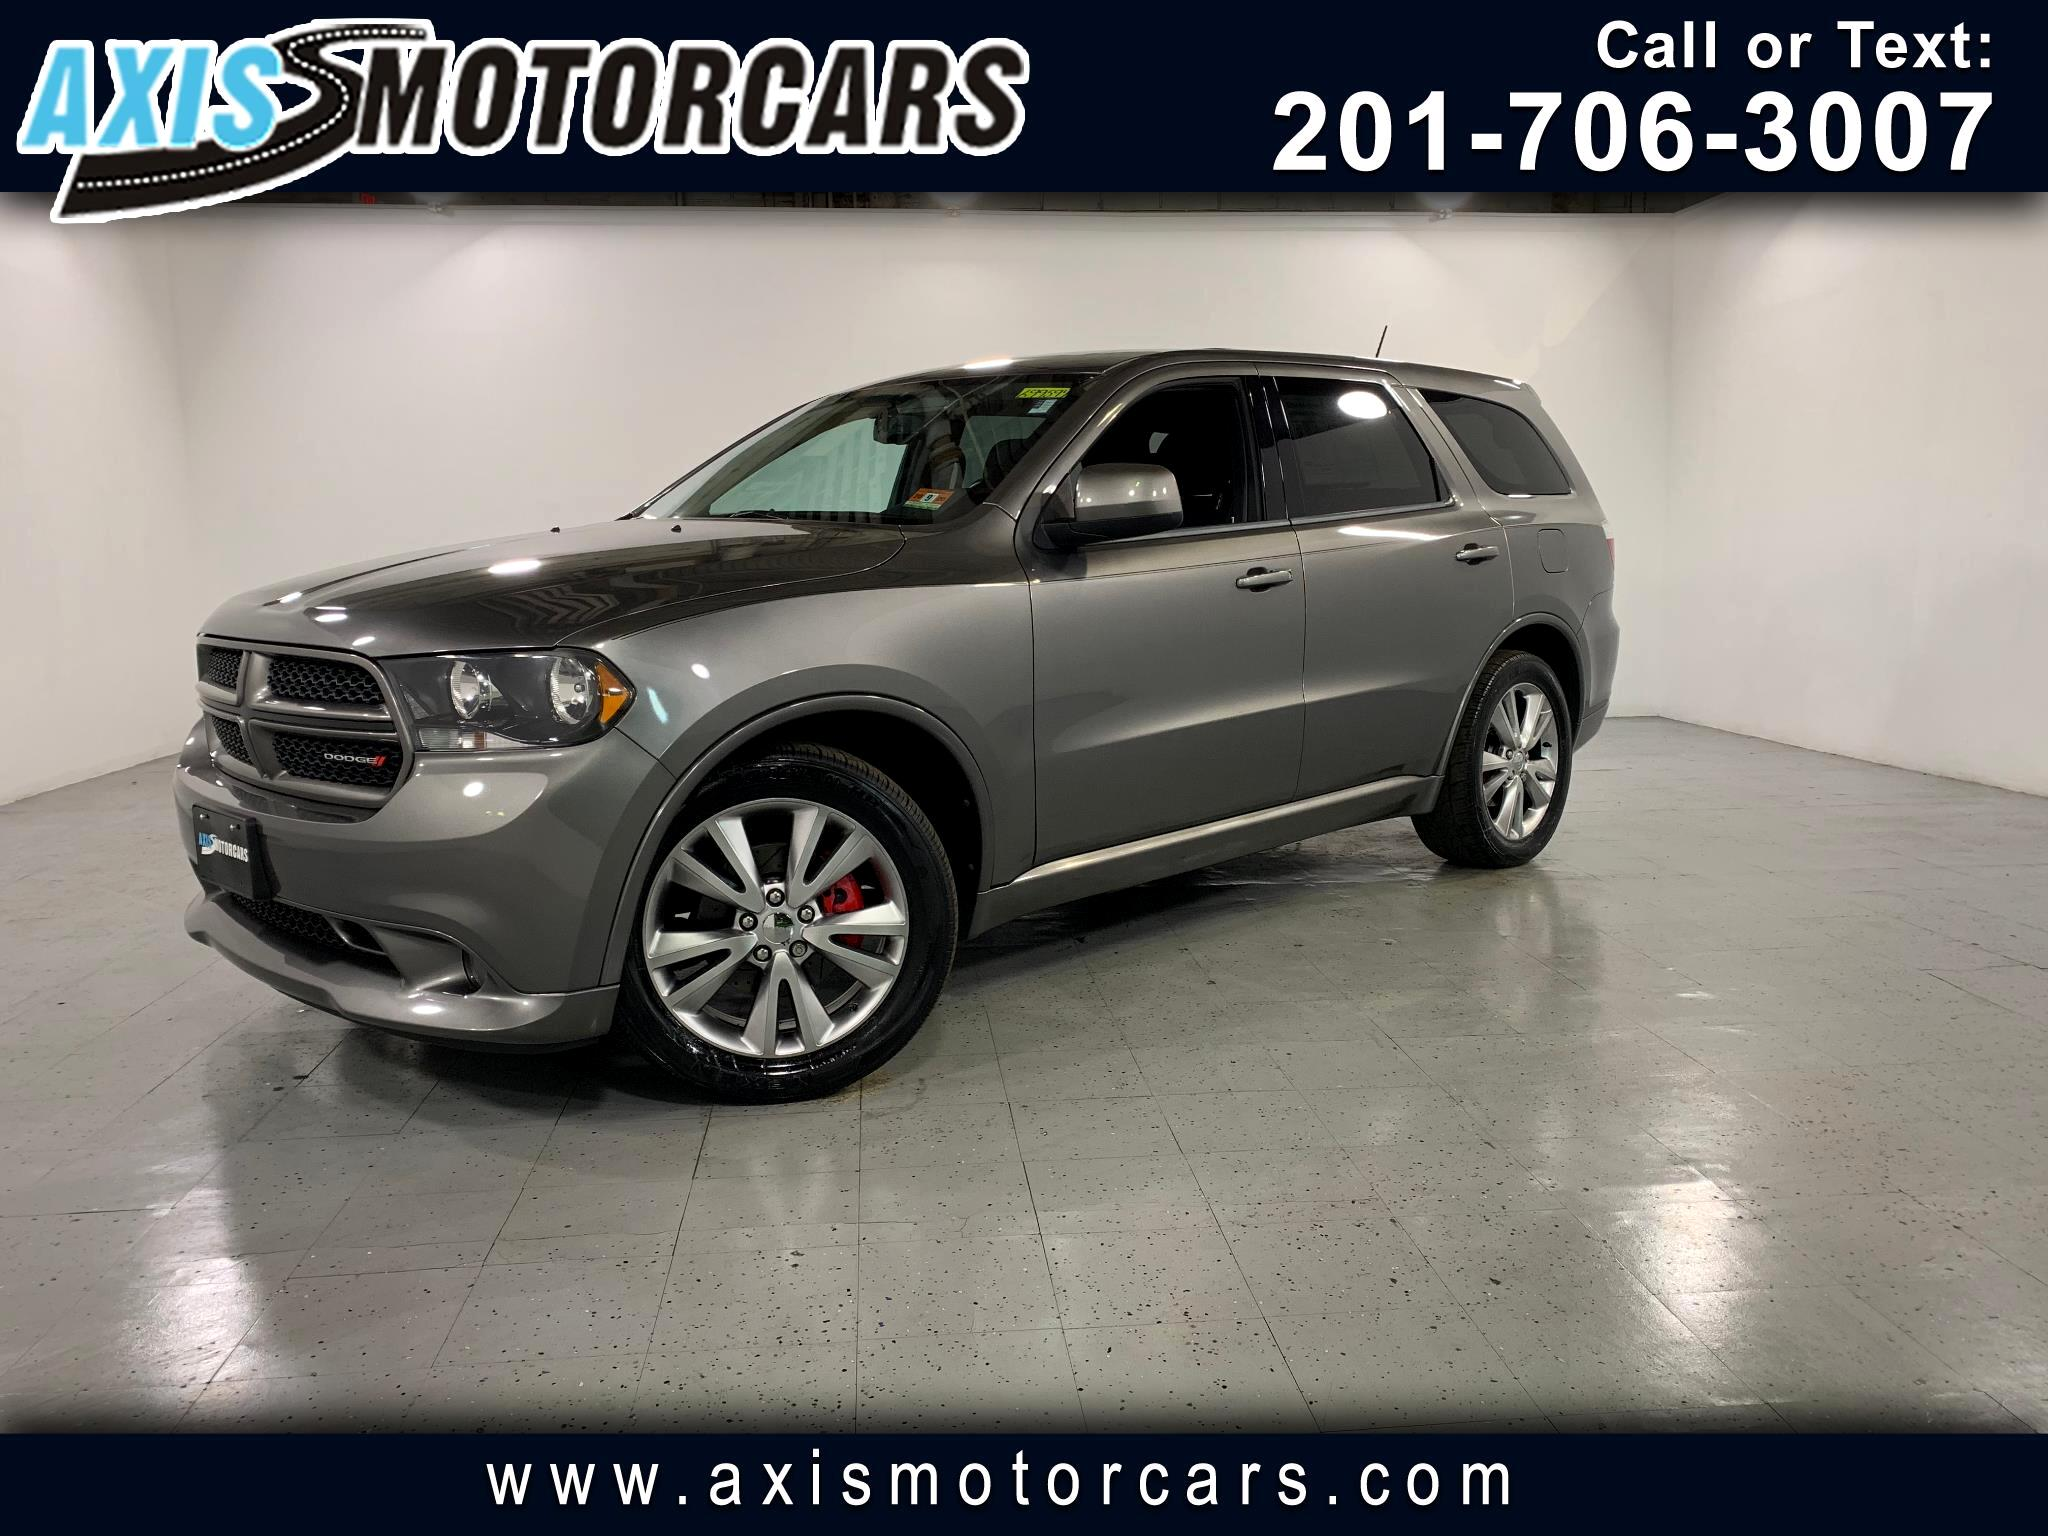 2011 Dodge Durango Heat w/Backup Camera Sunroof